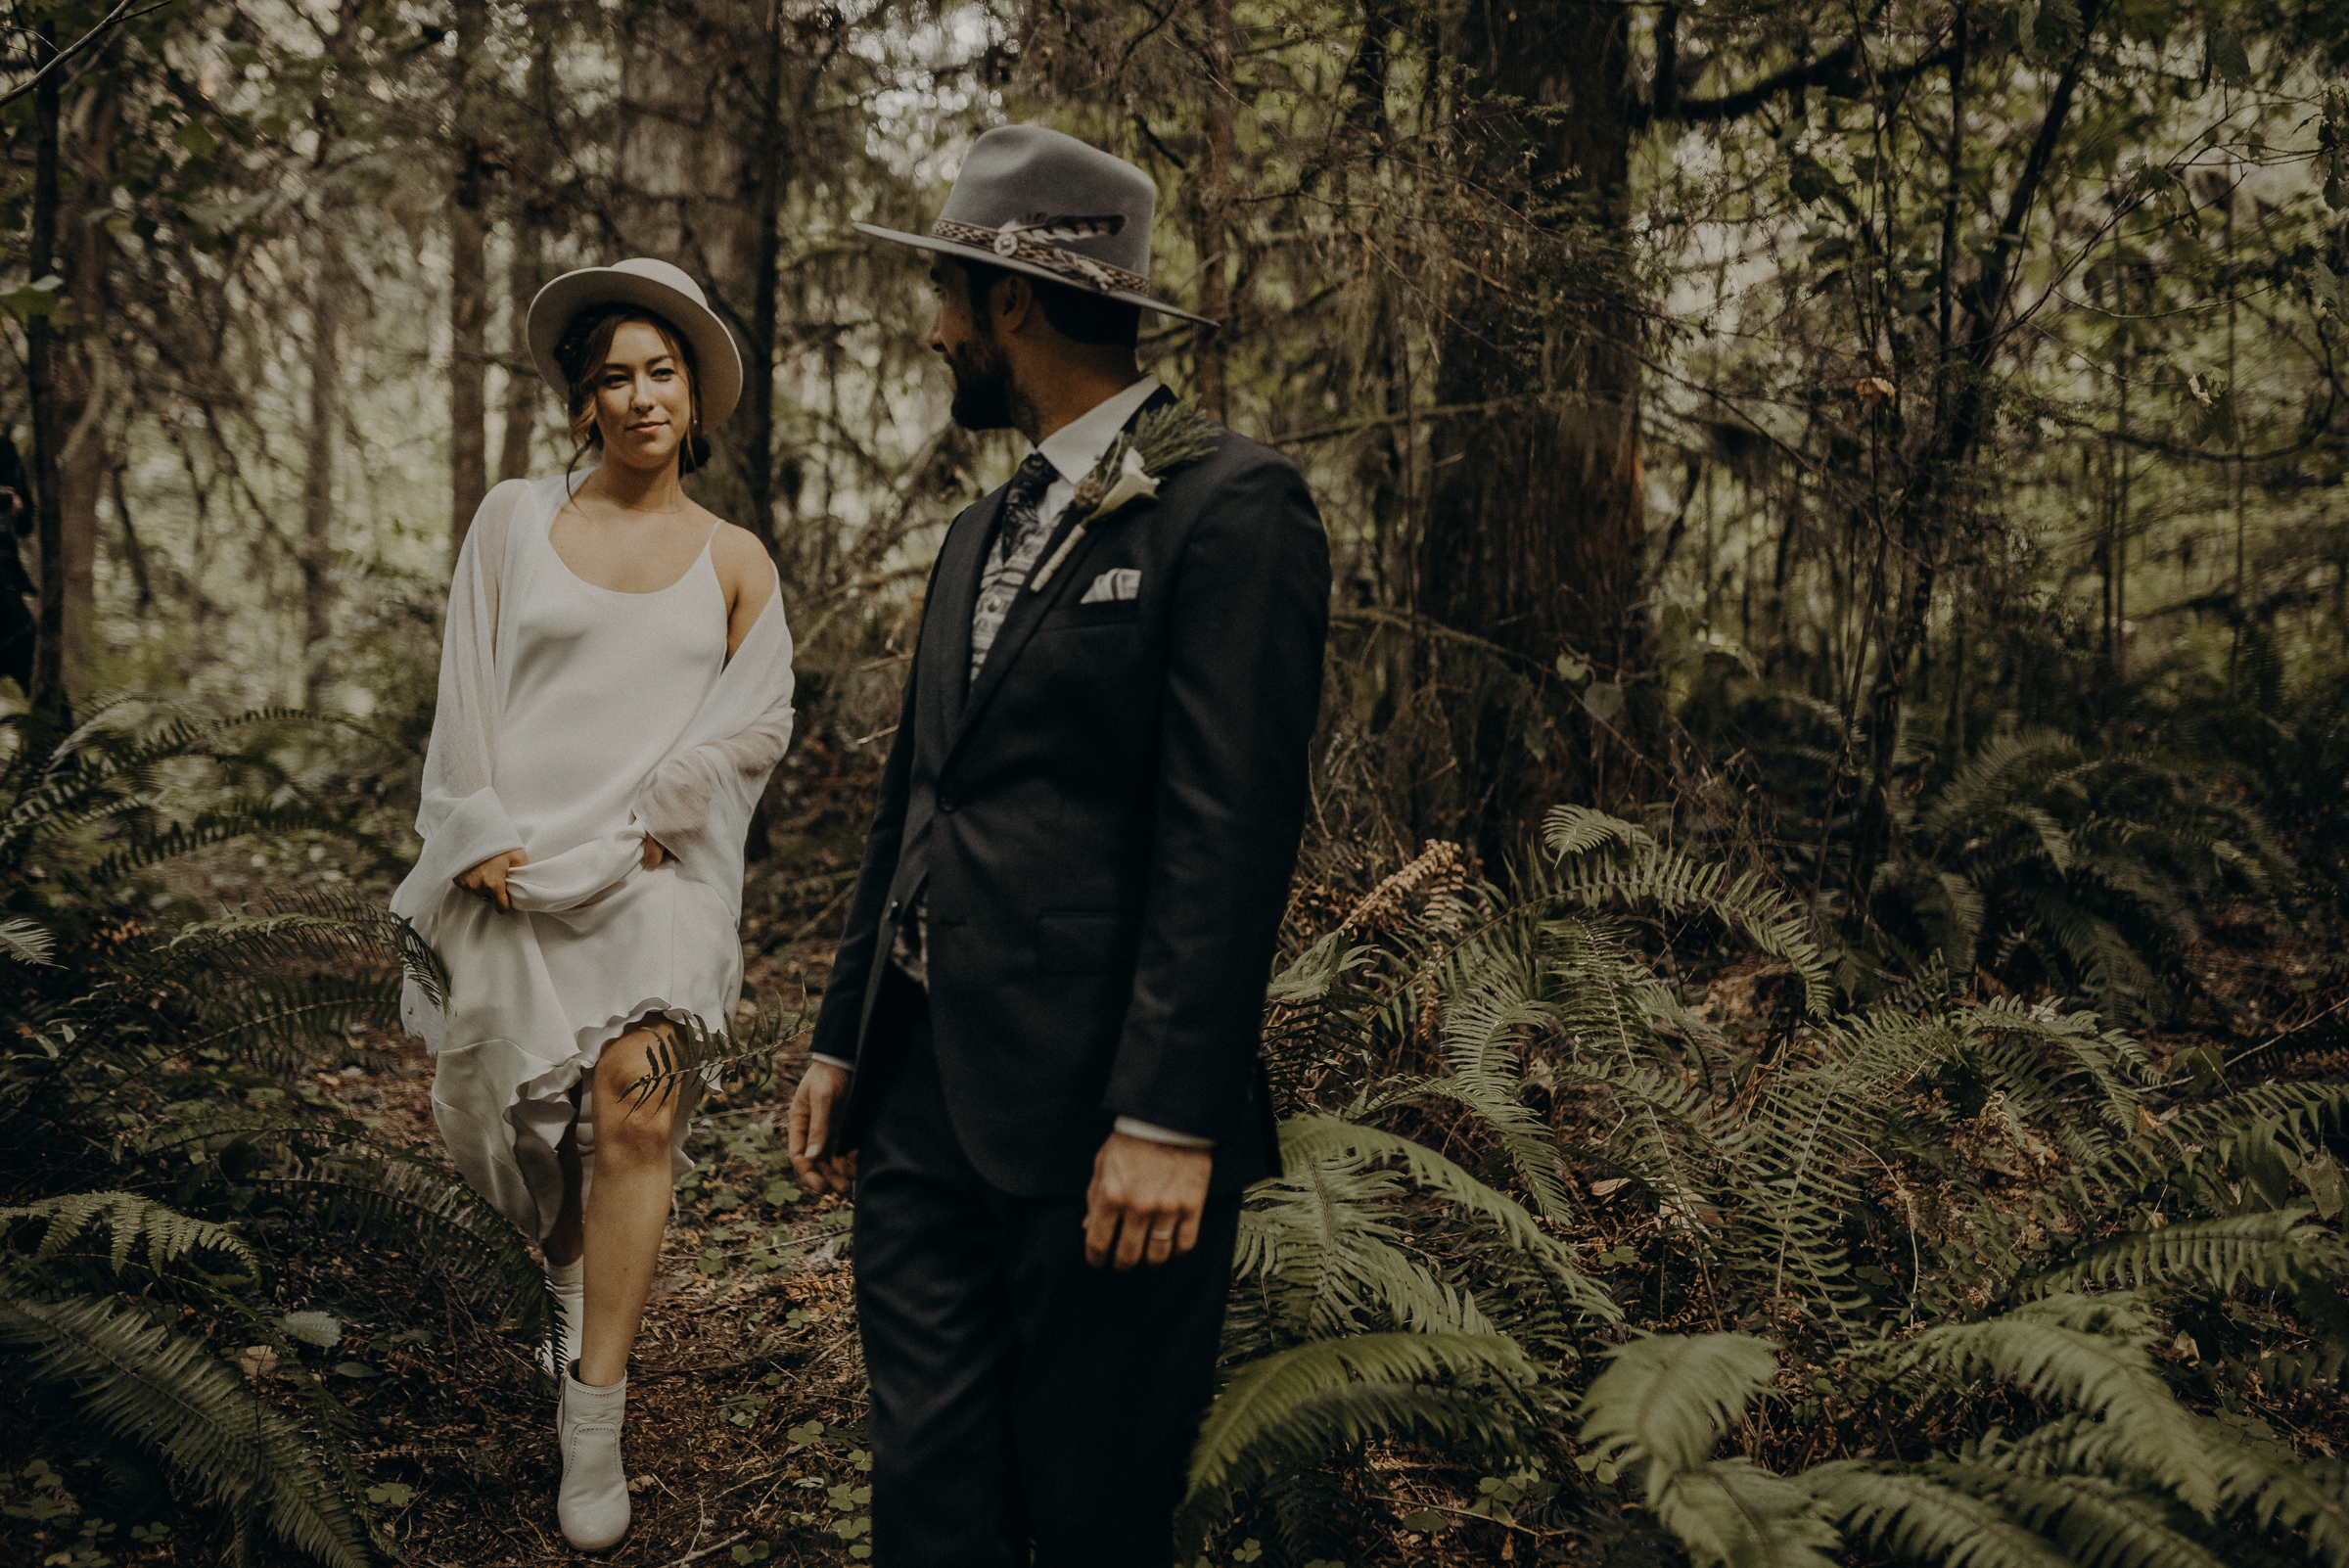 Isaiah + Taylor Photography - Camp Colton Wedding, Los Angeles Wedding Photographer-098.jpg